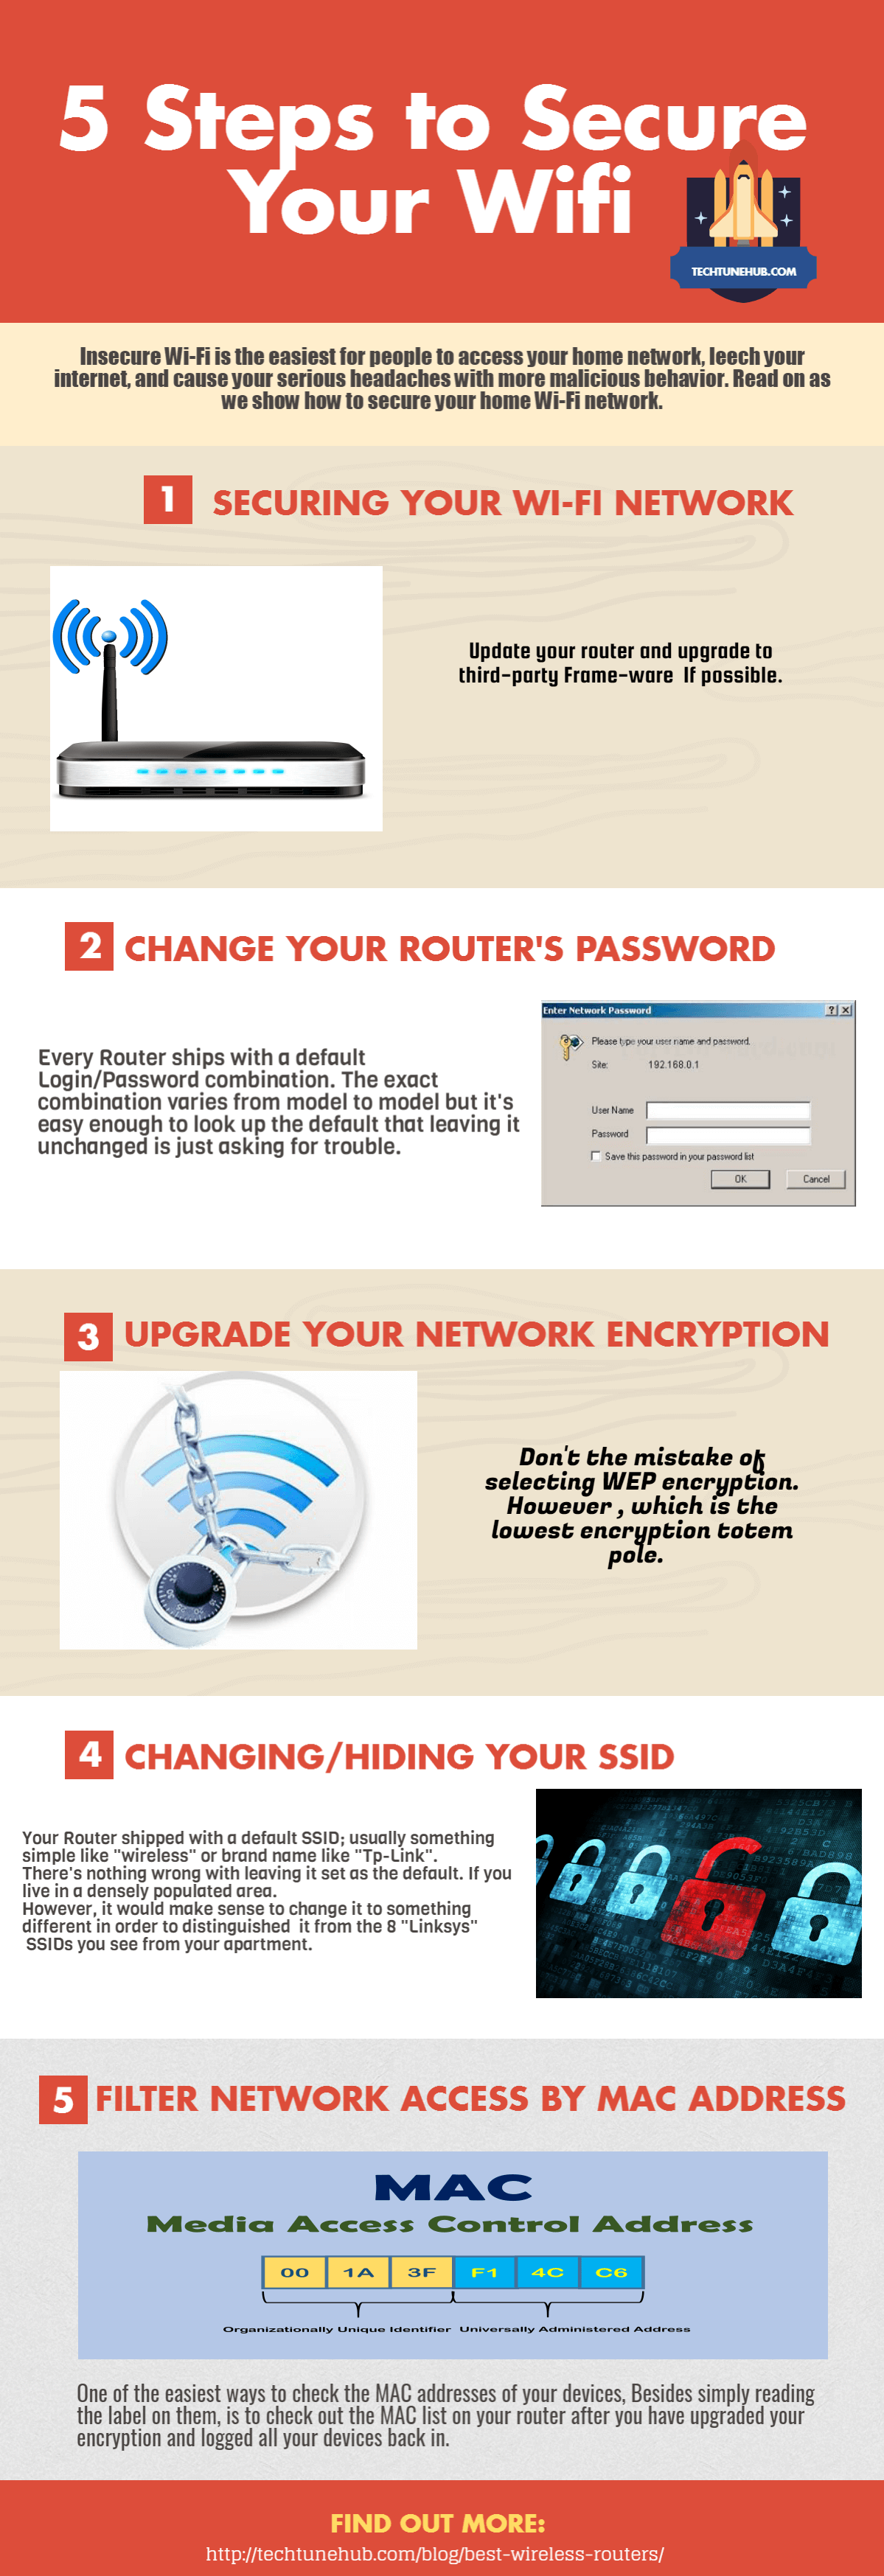 5 steps to secure your wifi network